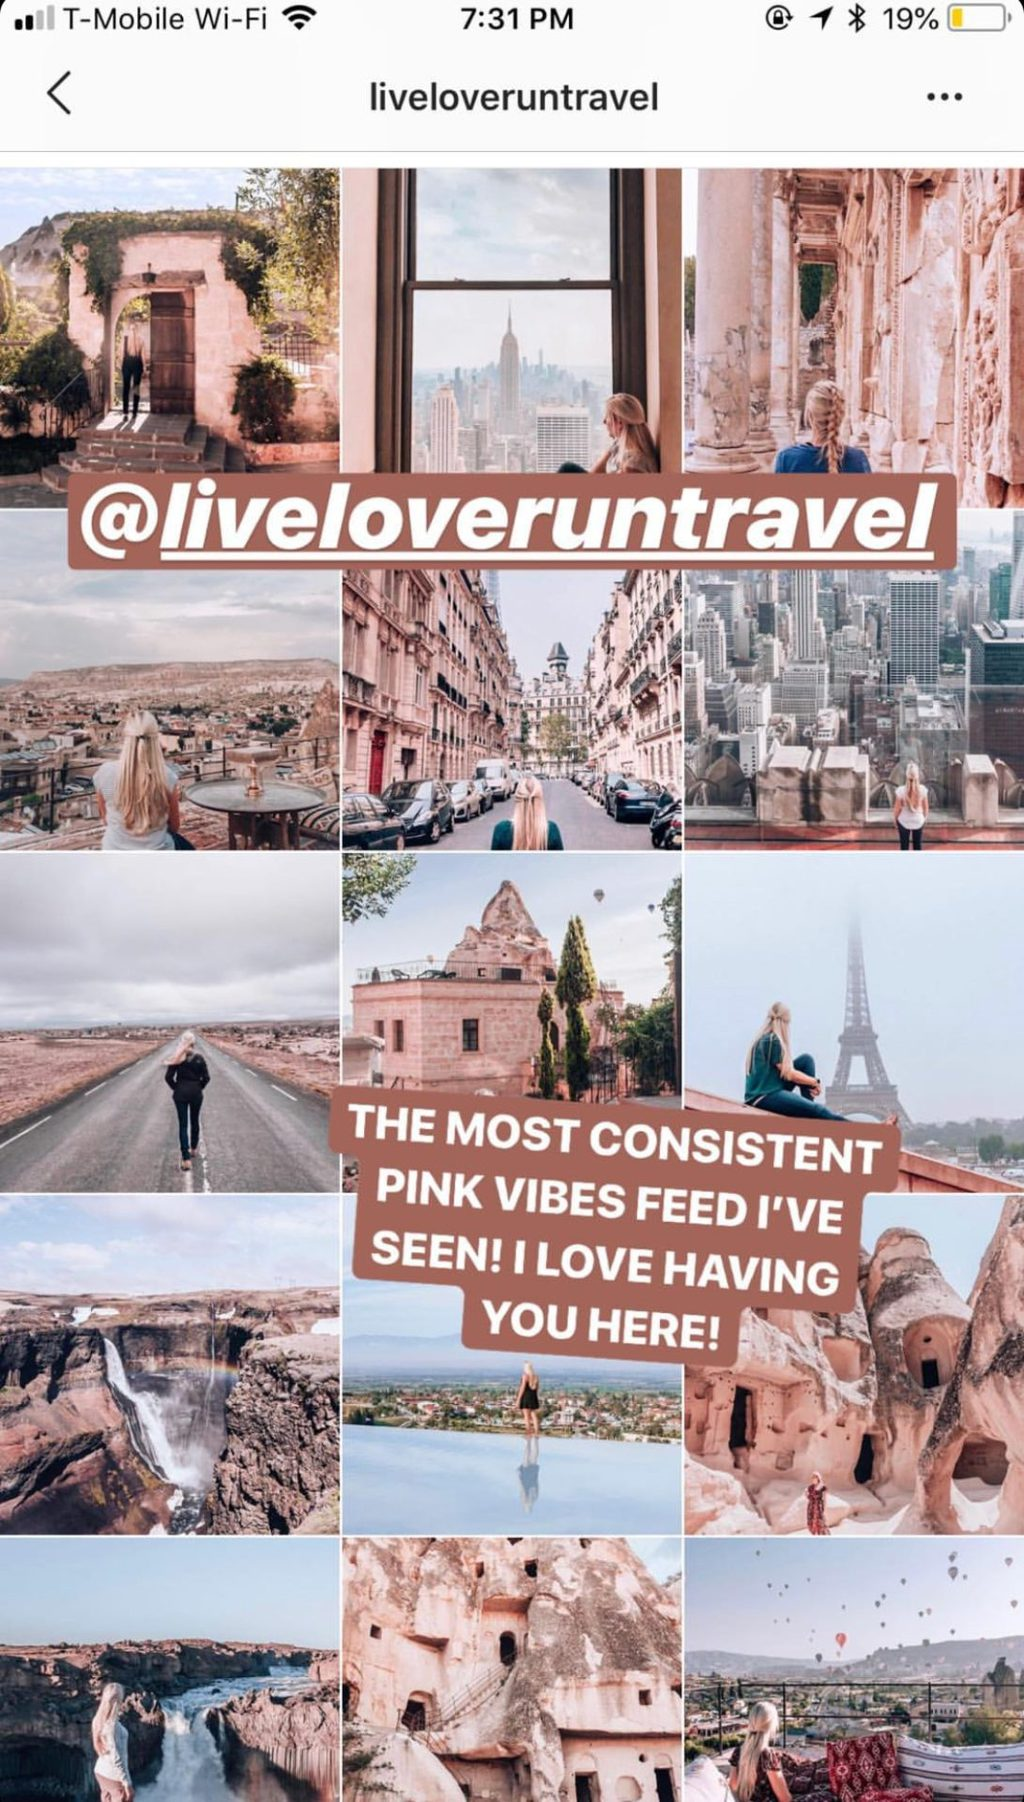 Getting a shout-out from a large account can send you hundreds of new followers in just a few hours or nothing at all. Find out how to get features and shout-outs on Instagram and if they help on my blog post.